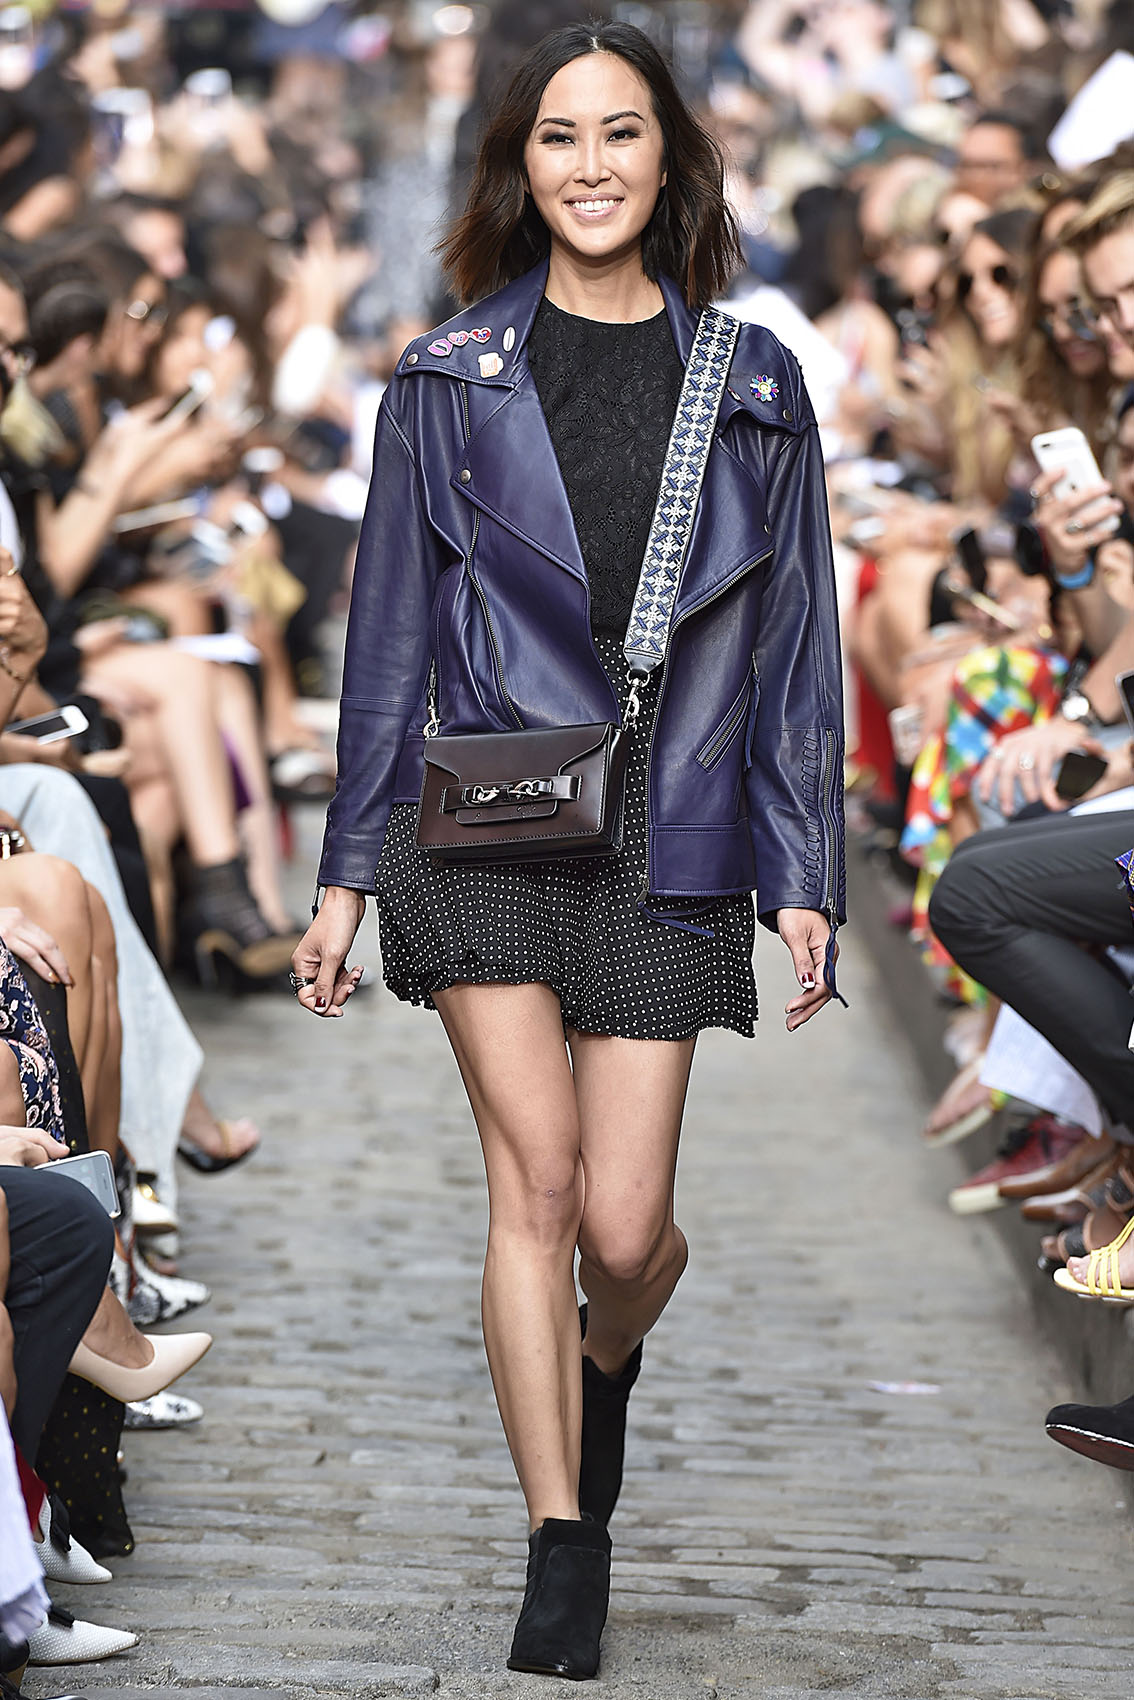 Rebecca Minkoff Runway Model during New York Fashion Week